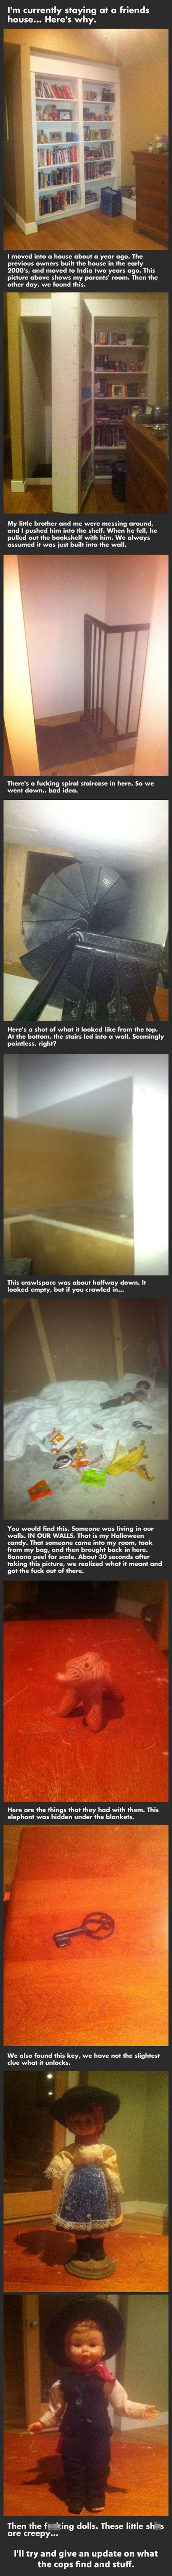 You will not believe what these brothers found behind this bookshelf.